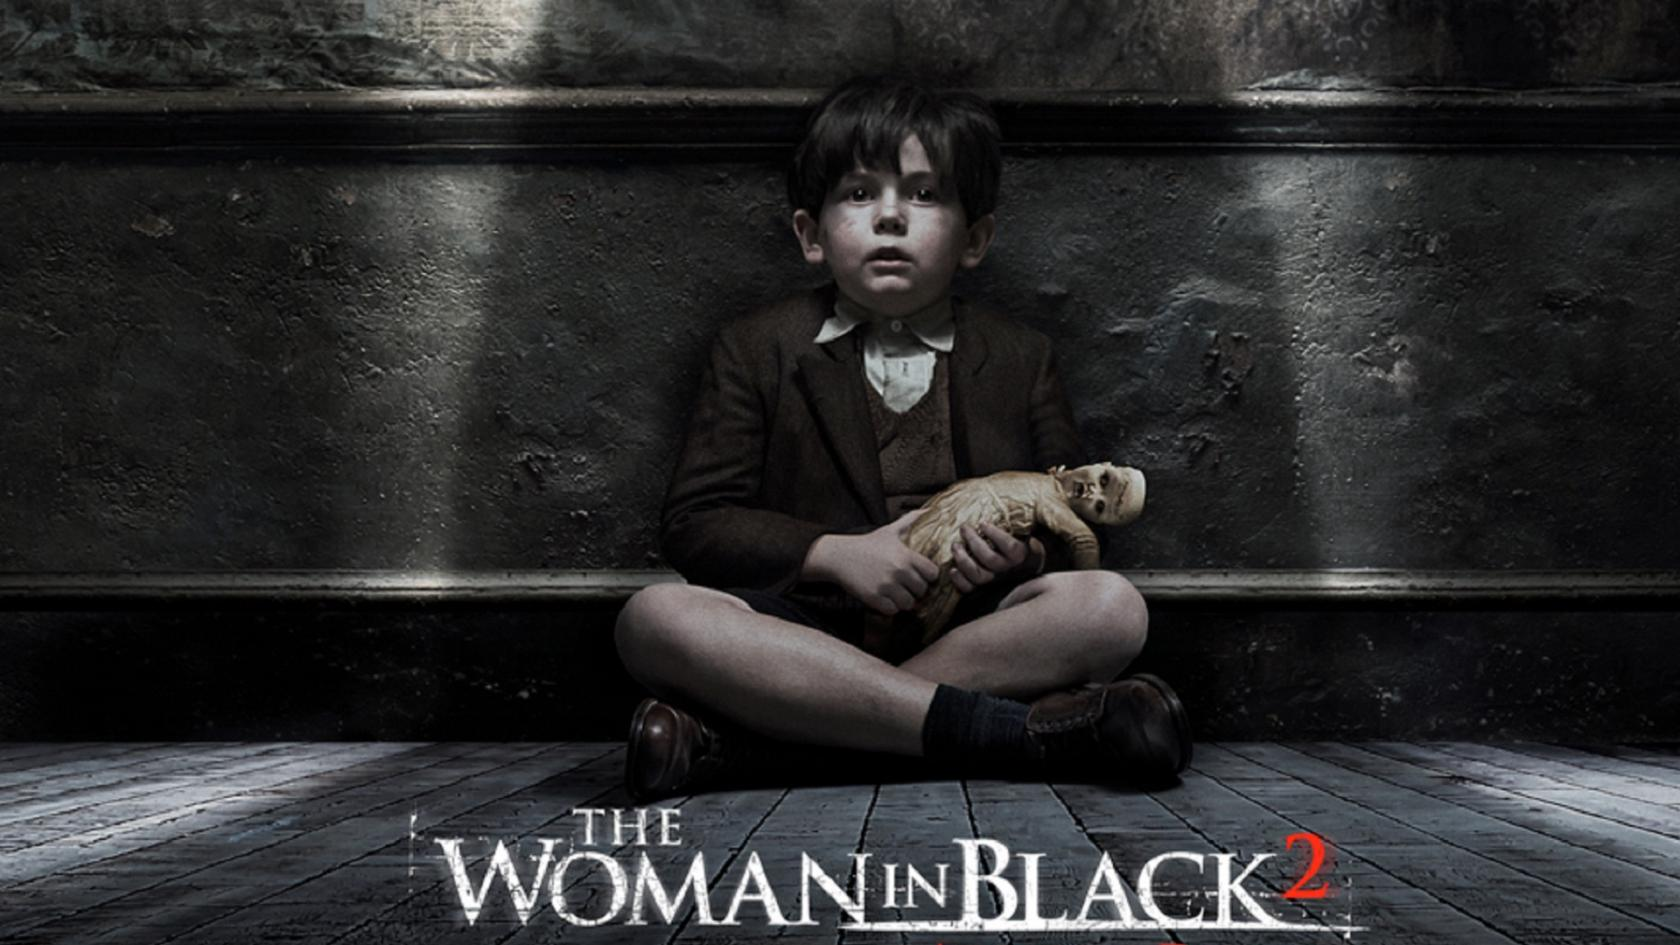 The Woman In Black - 2